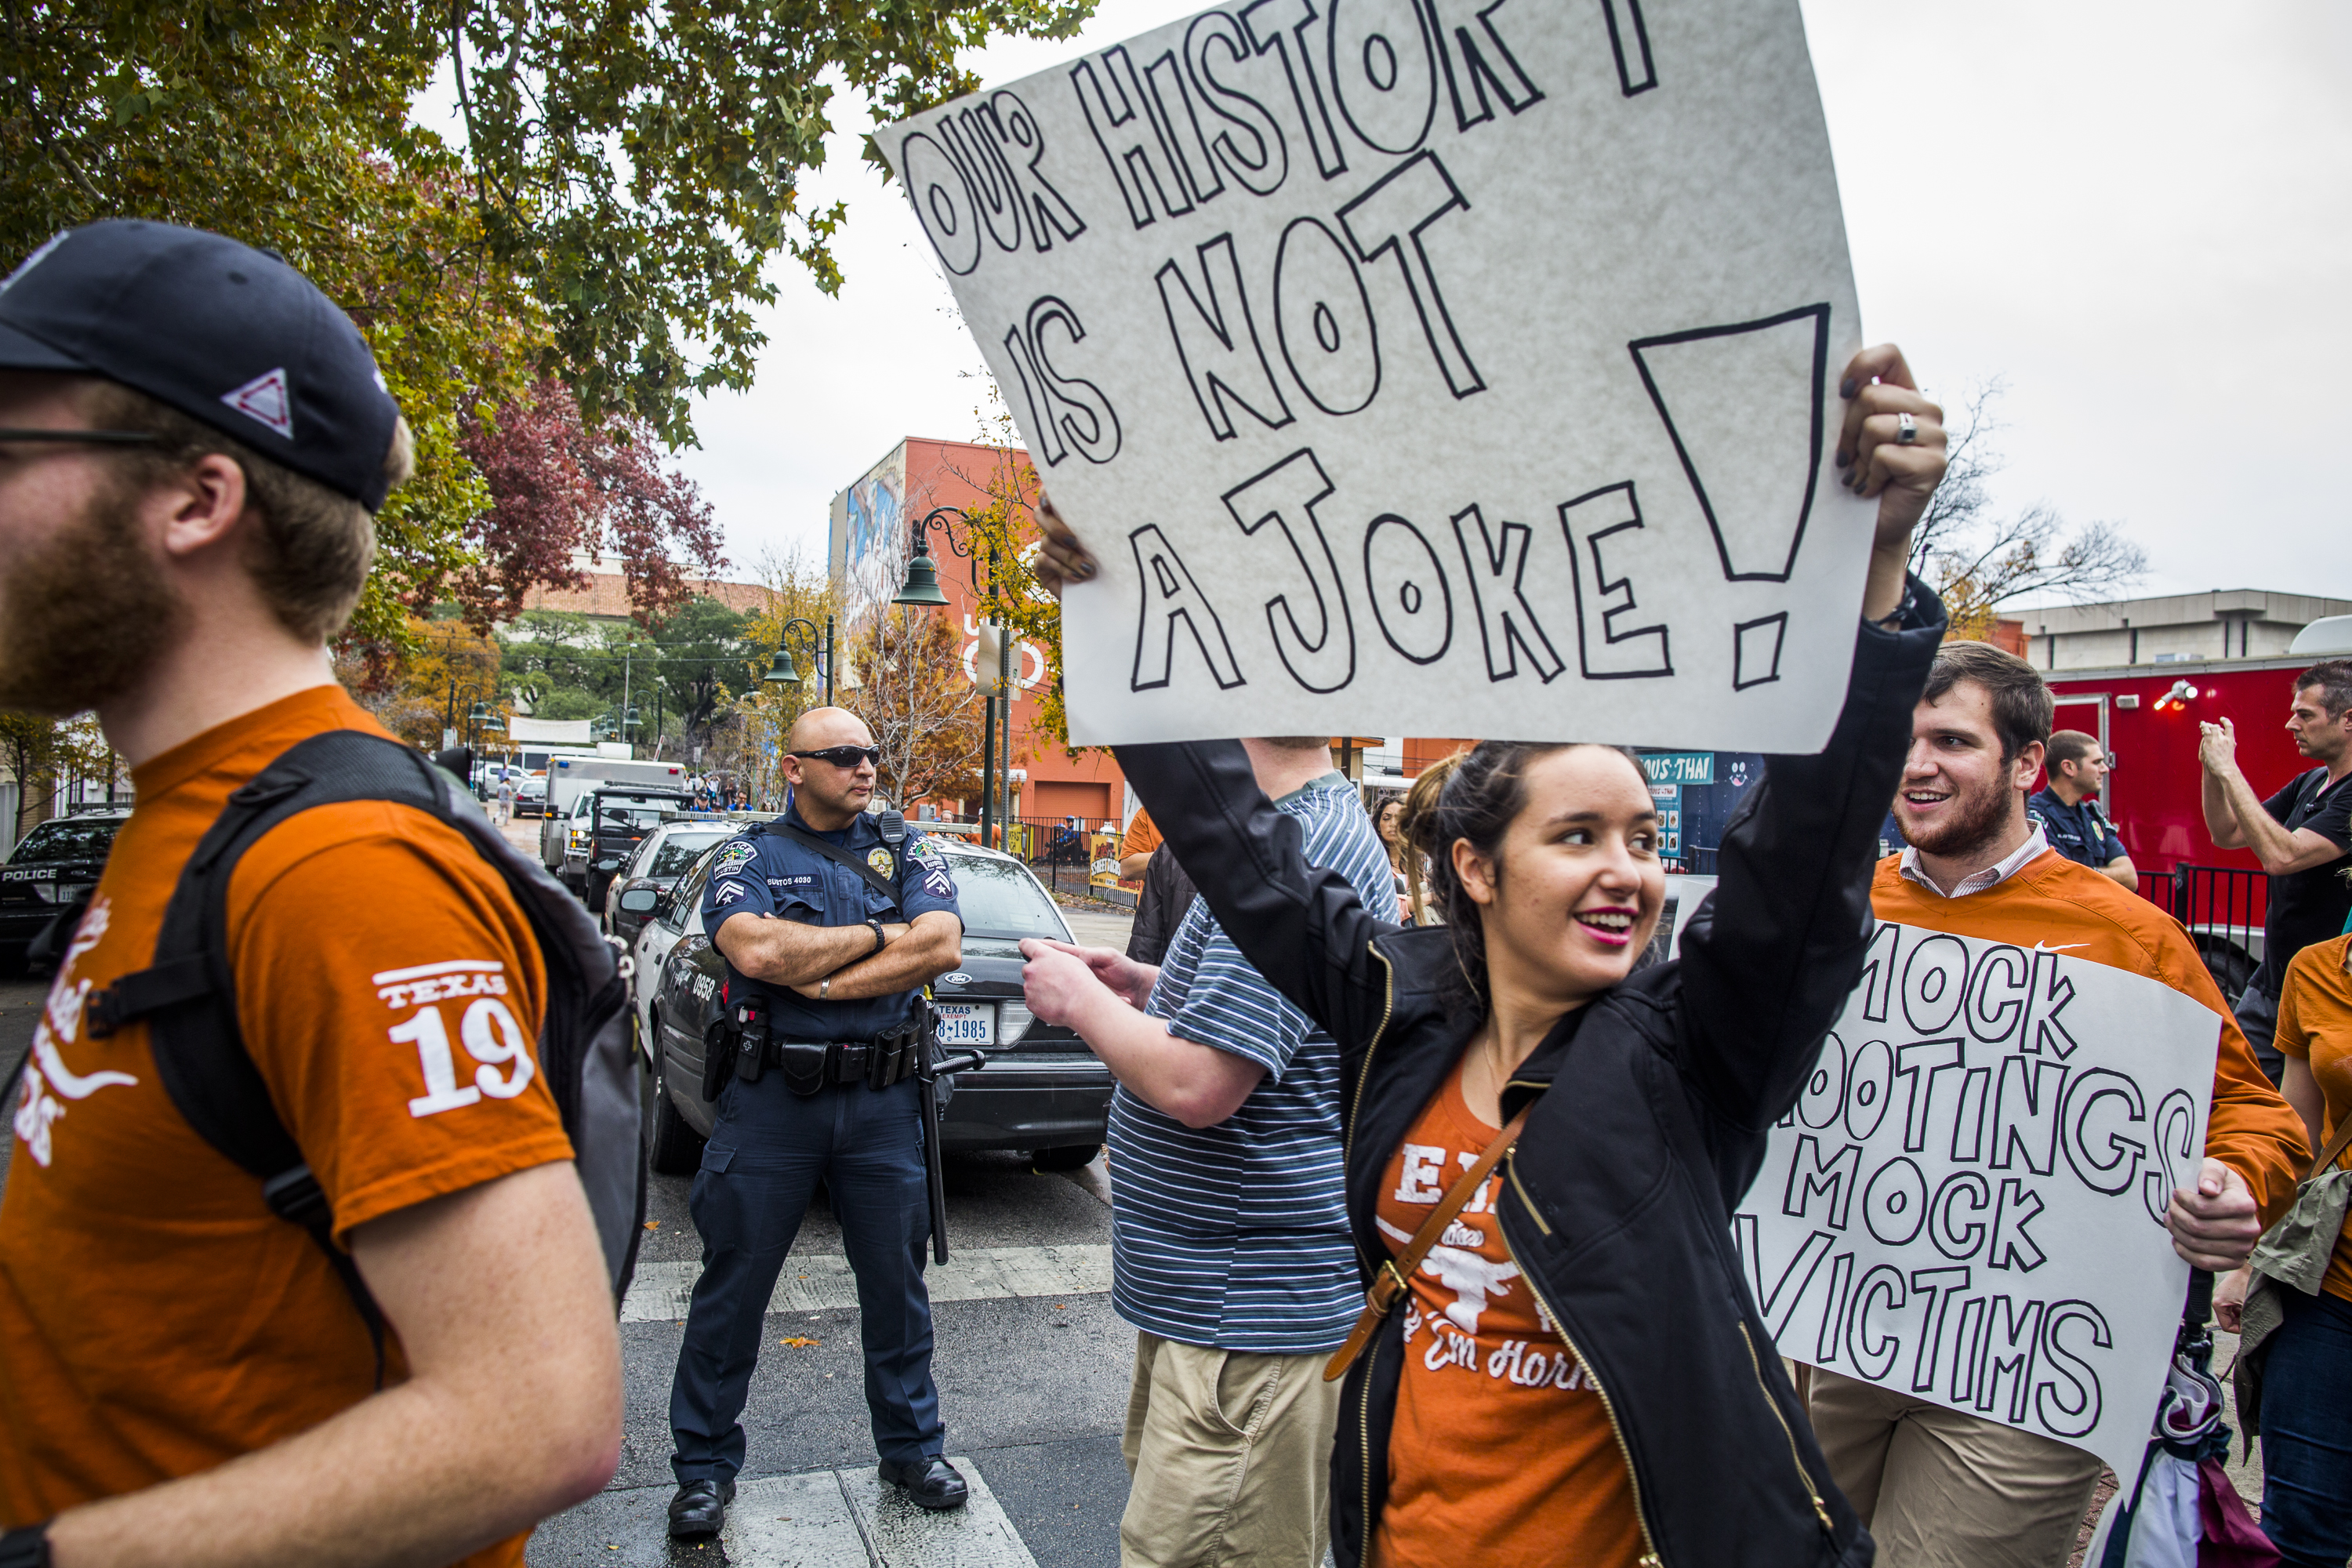 Pro-gun control protestors rally against an open carry demonstration close to The University of Texas campus December 12, 2015 in Austin, Texas. In addition to the event put on by DontComply.com, a gun activist organization, the group also held an open carry walk earlier in the day. (Photo by Drew Anthony Smith/Getty Images)